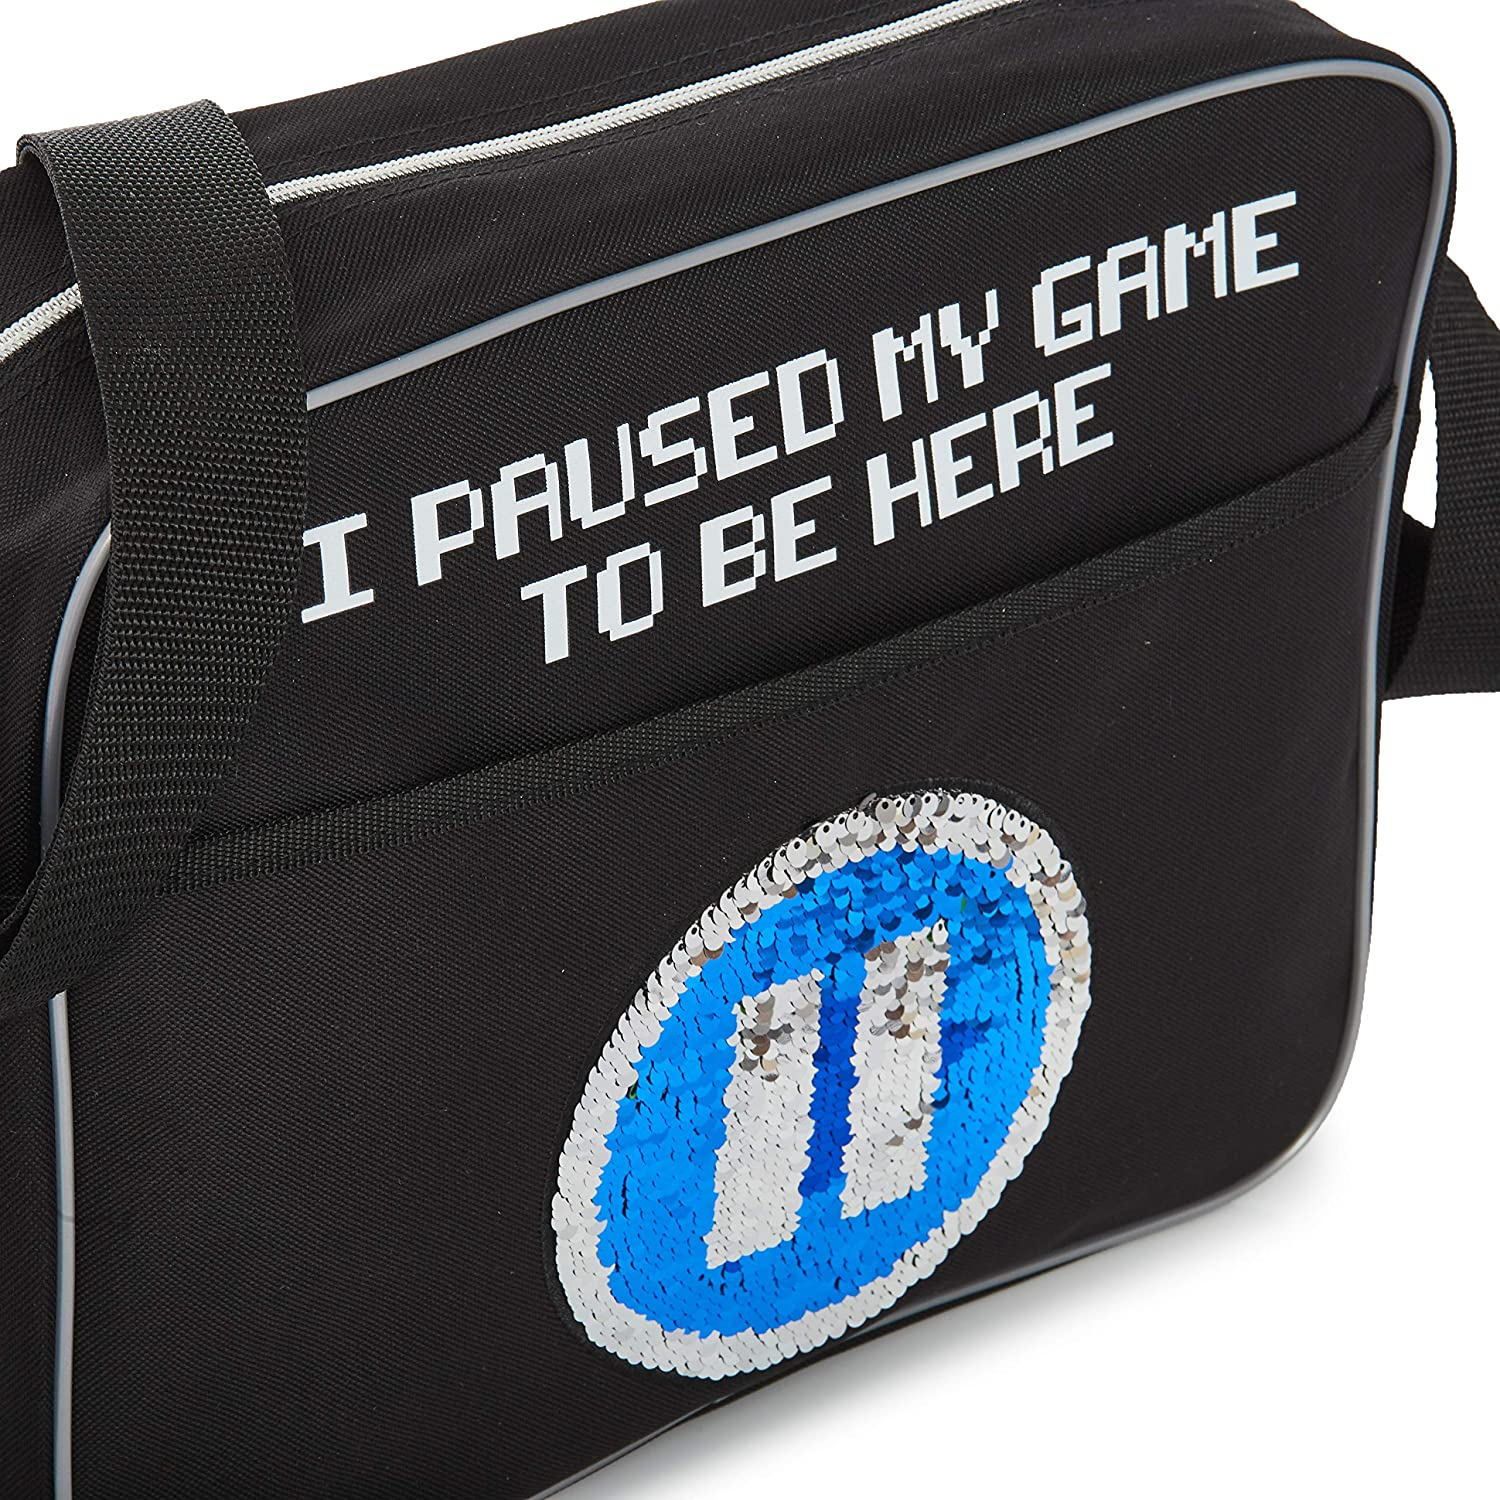 Great Gift Idea For Gamers School Or Travel Crossbody Shoulder Bag for Gym CityComfort Messenger Bag I Paused My Game To Be Here Design with Flippy Sequin Play-Pause Detail